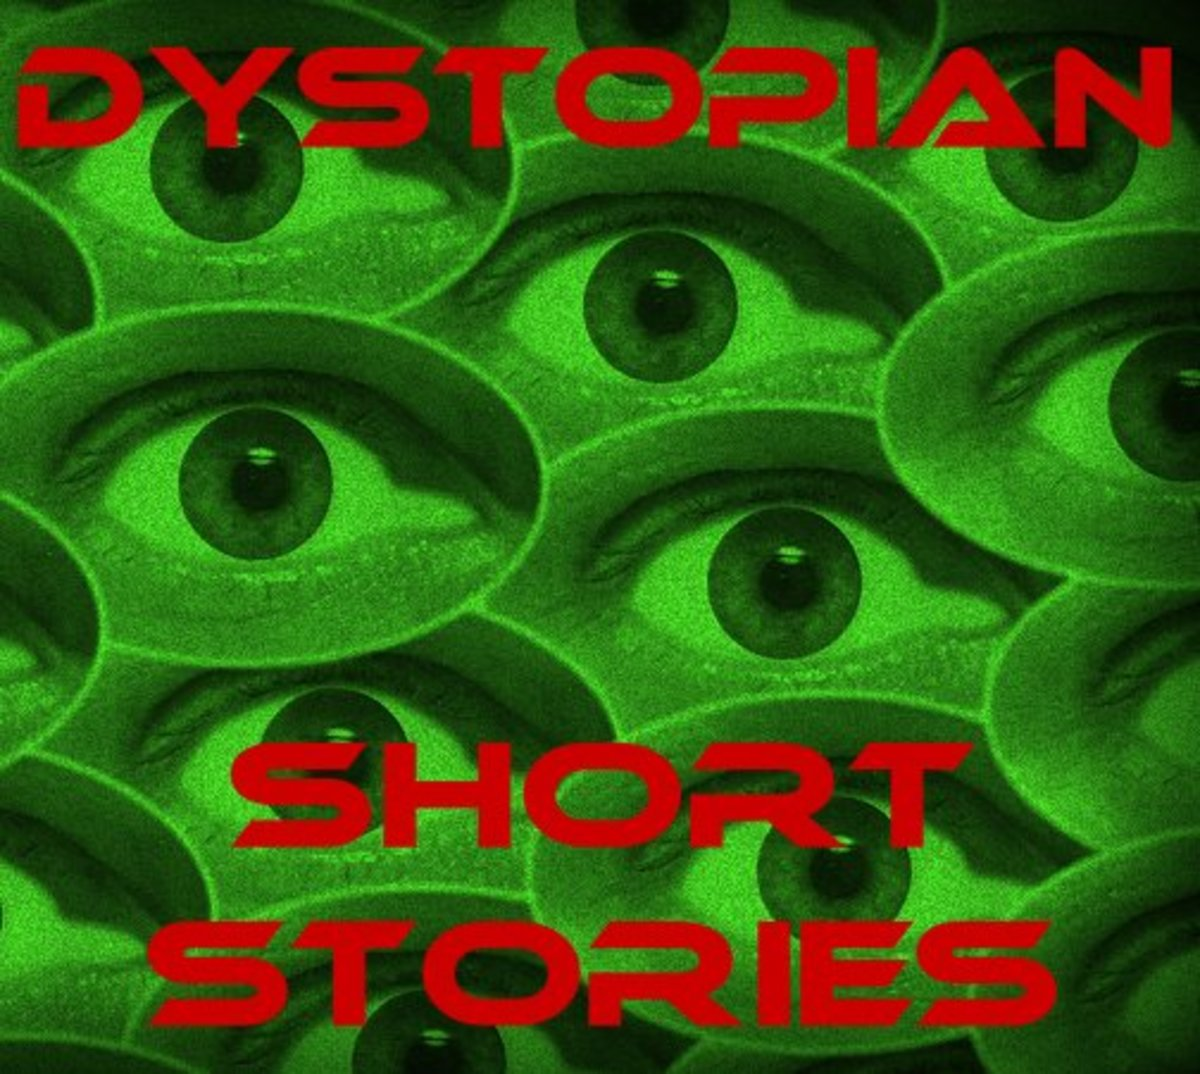 dystopian short stories online